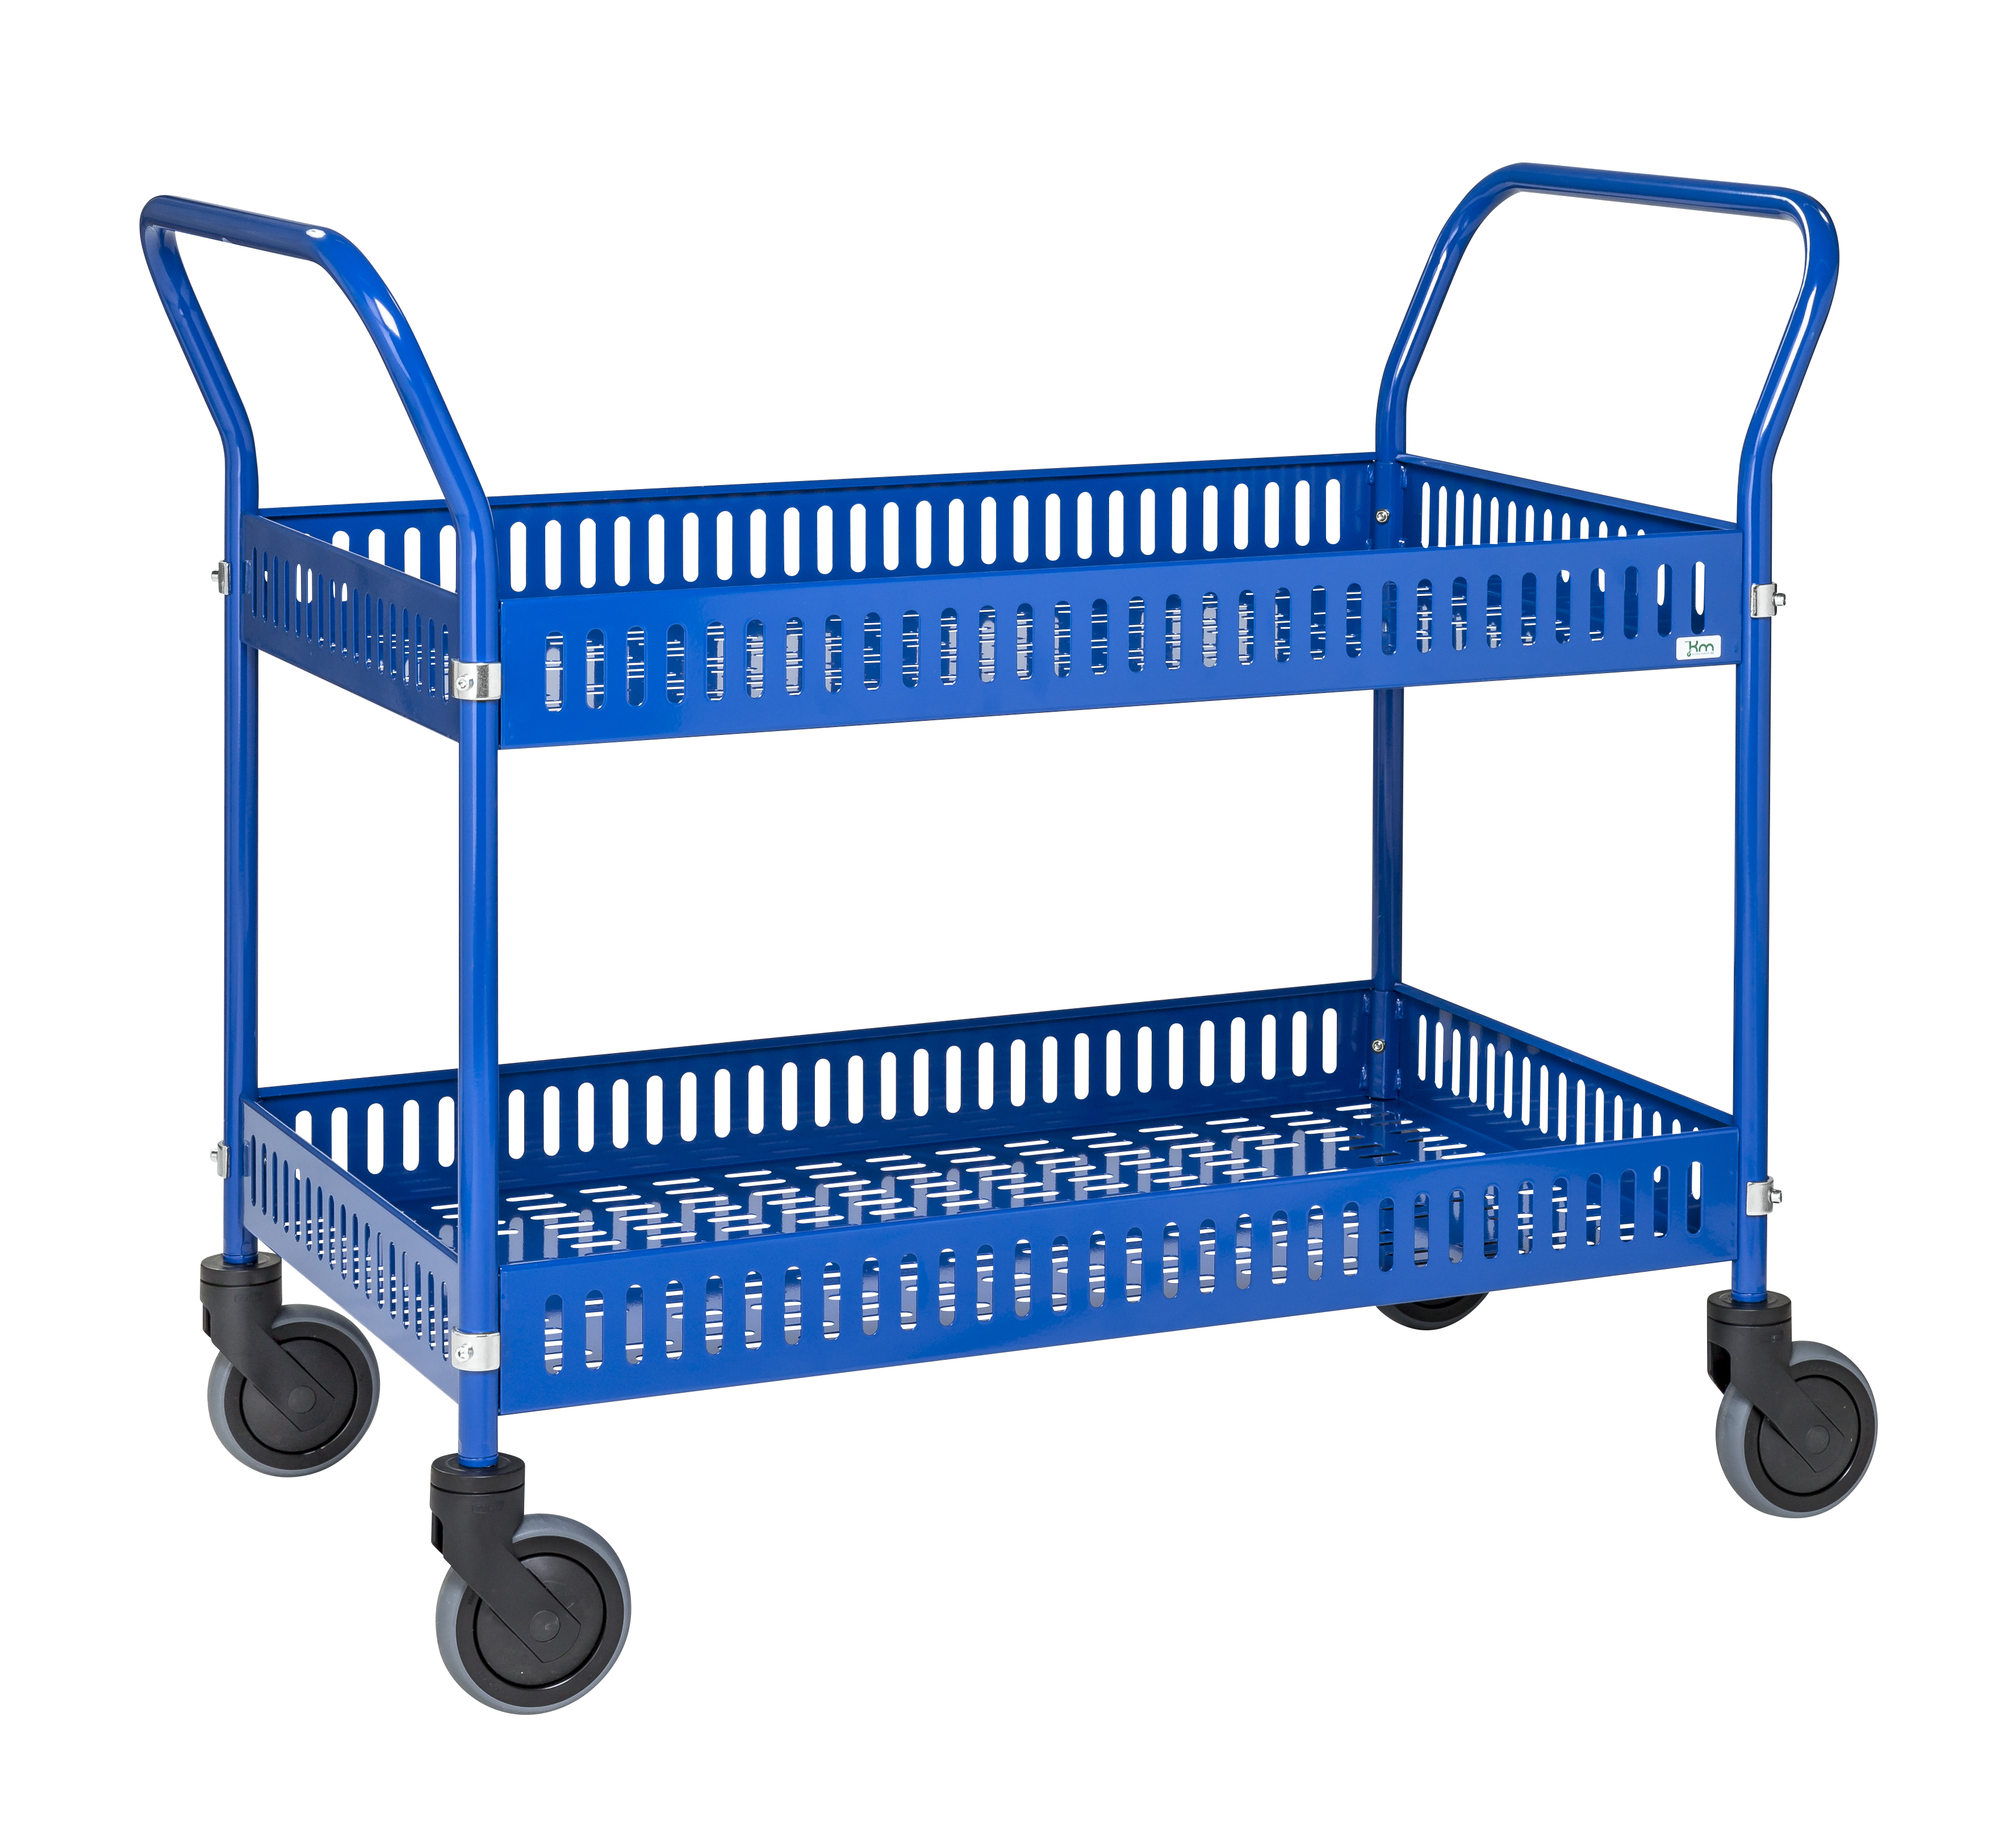 KM3200 | Table trolley with side rail